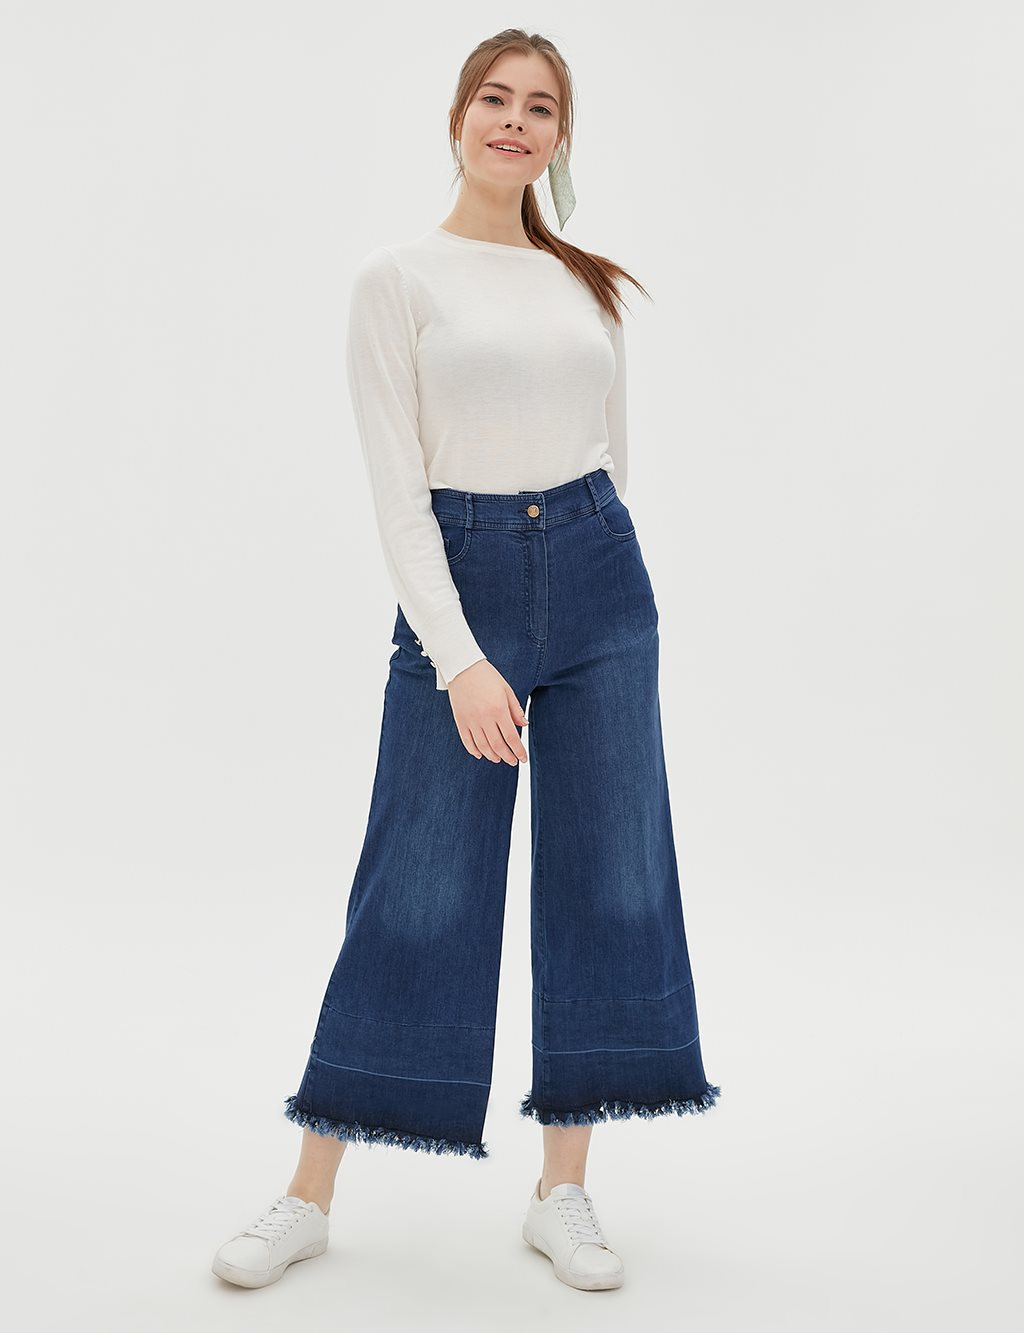 Fringe Detailed Wide Leg Pants B20 19152 Indigo